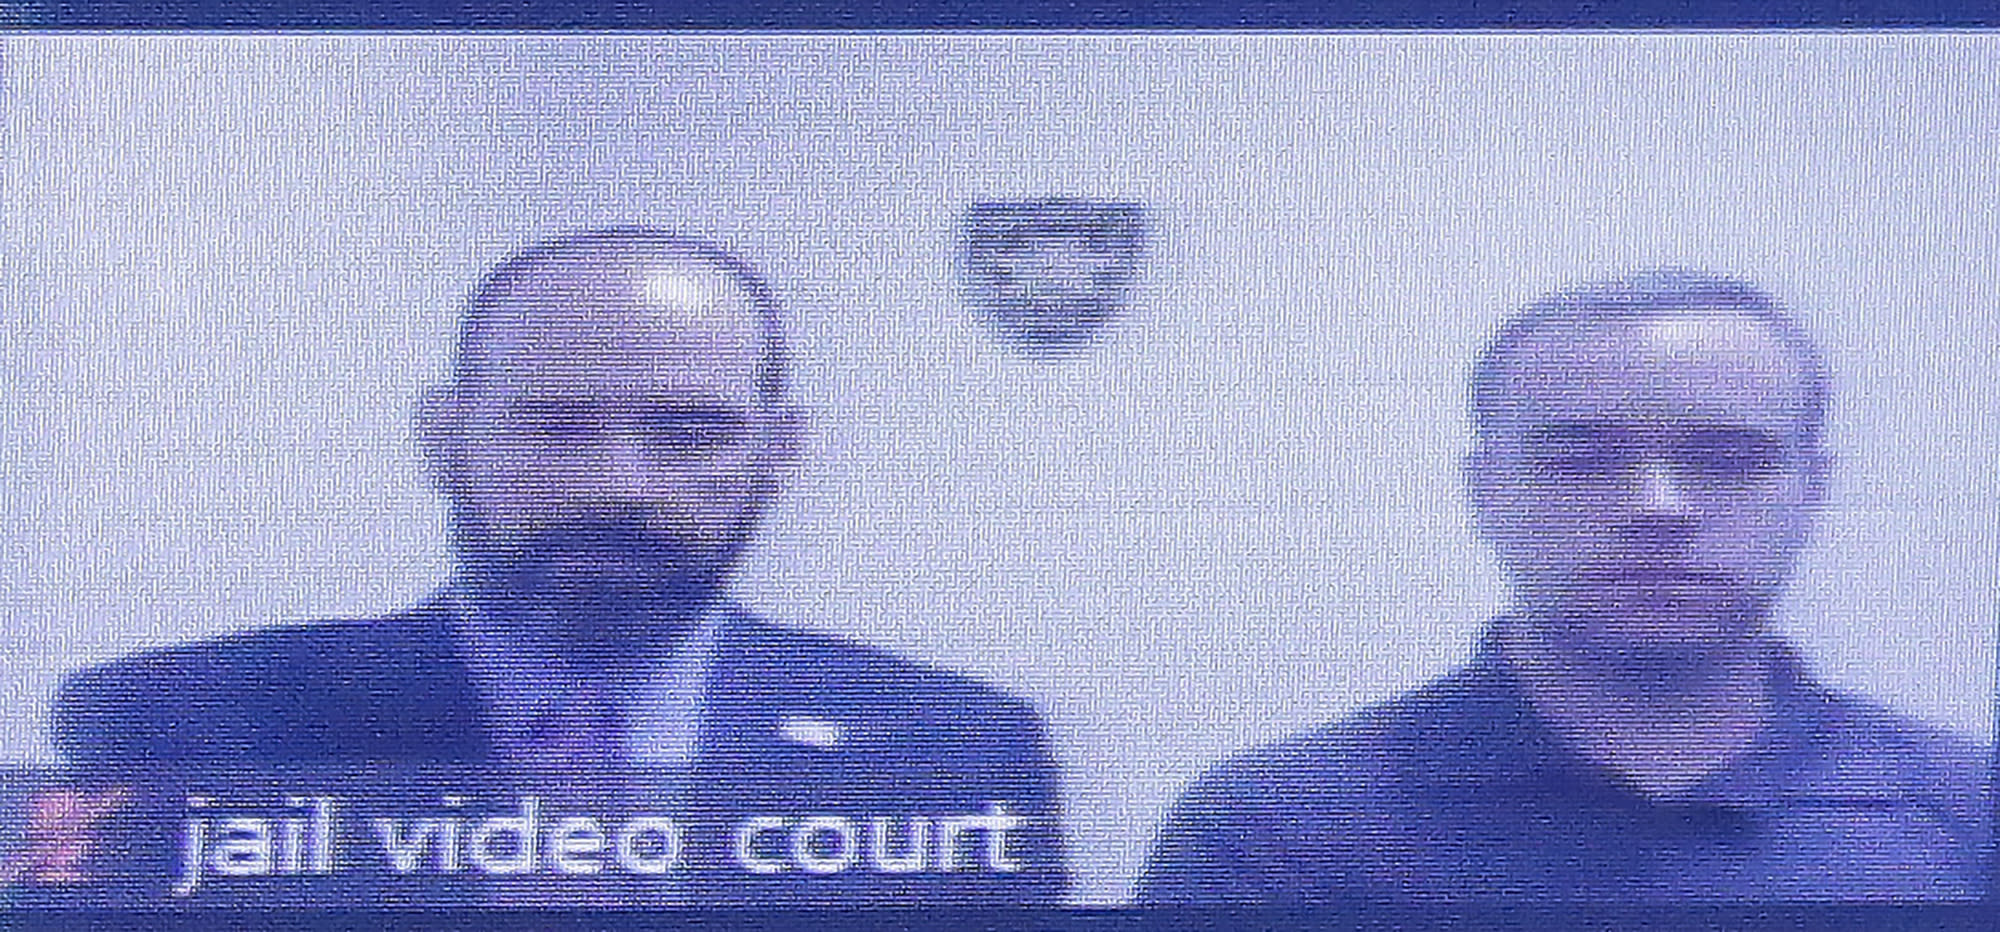 Former Atlanta police Officer Garrett Rolfe, right, appears on a television screen with attorney Lance LoRusso, Tuesday, June 30, 2020, in Atlanta. Rolfe, who fatally shot Rayshard Brooks when Brooks fired a Taser in his direction while running away after a struggle on June 12, can be free on bond while his case is pending. A judge set a bond of $500,000 for Rolfe, who faces charges, including felony murder. (AP Photo/Brynn Anderson, Pool)